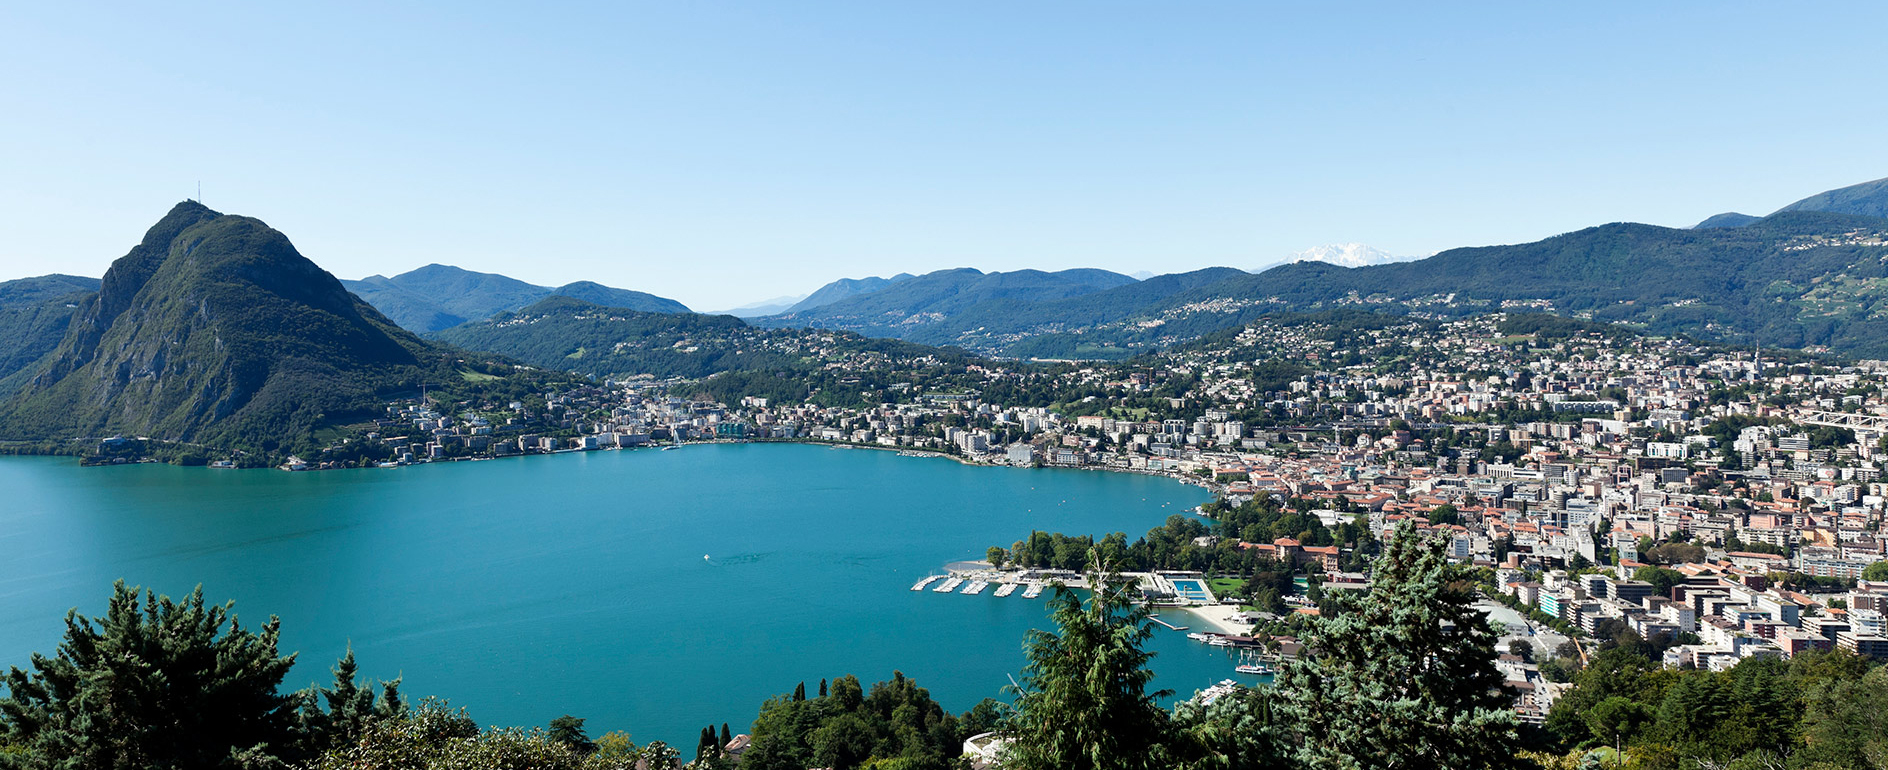 CHY_Lugano_Ticino_Switzerland_day